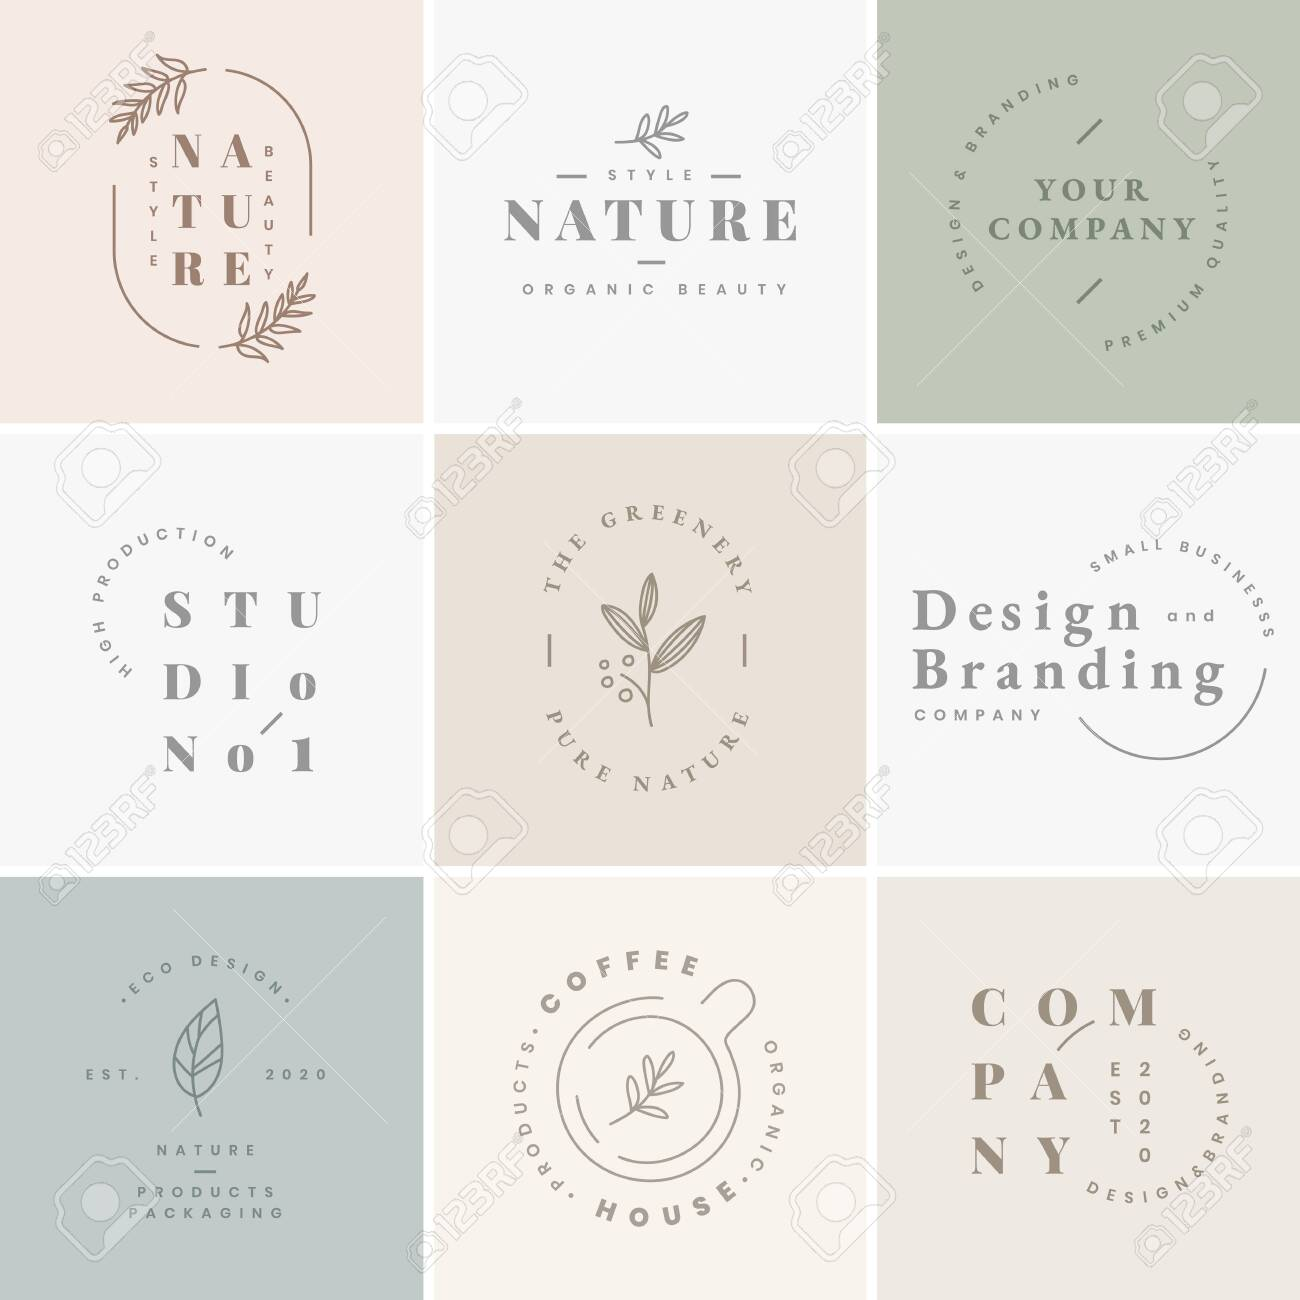 Floral brand and logo designs vector collection - 120963737